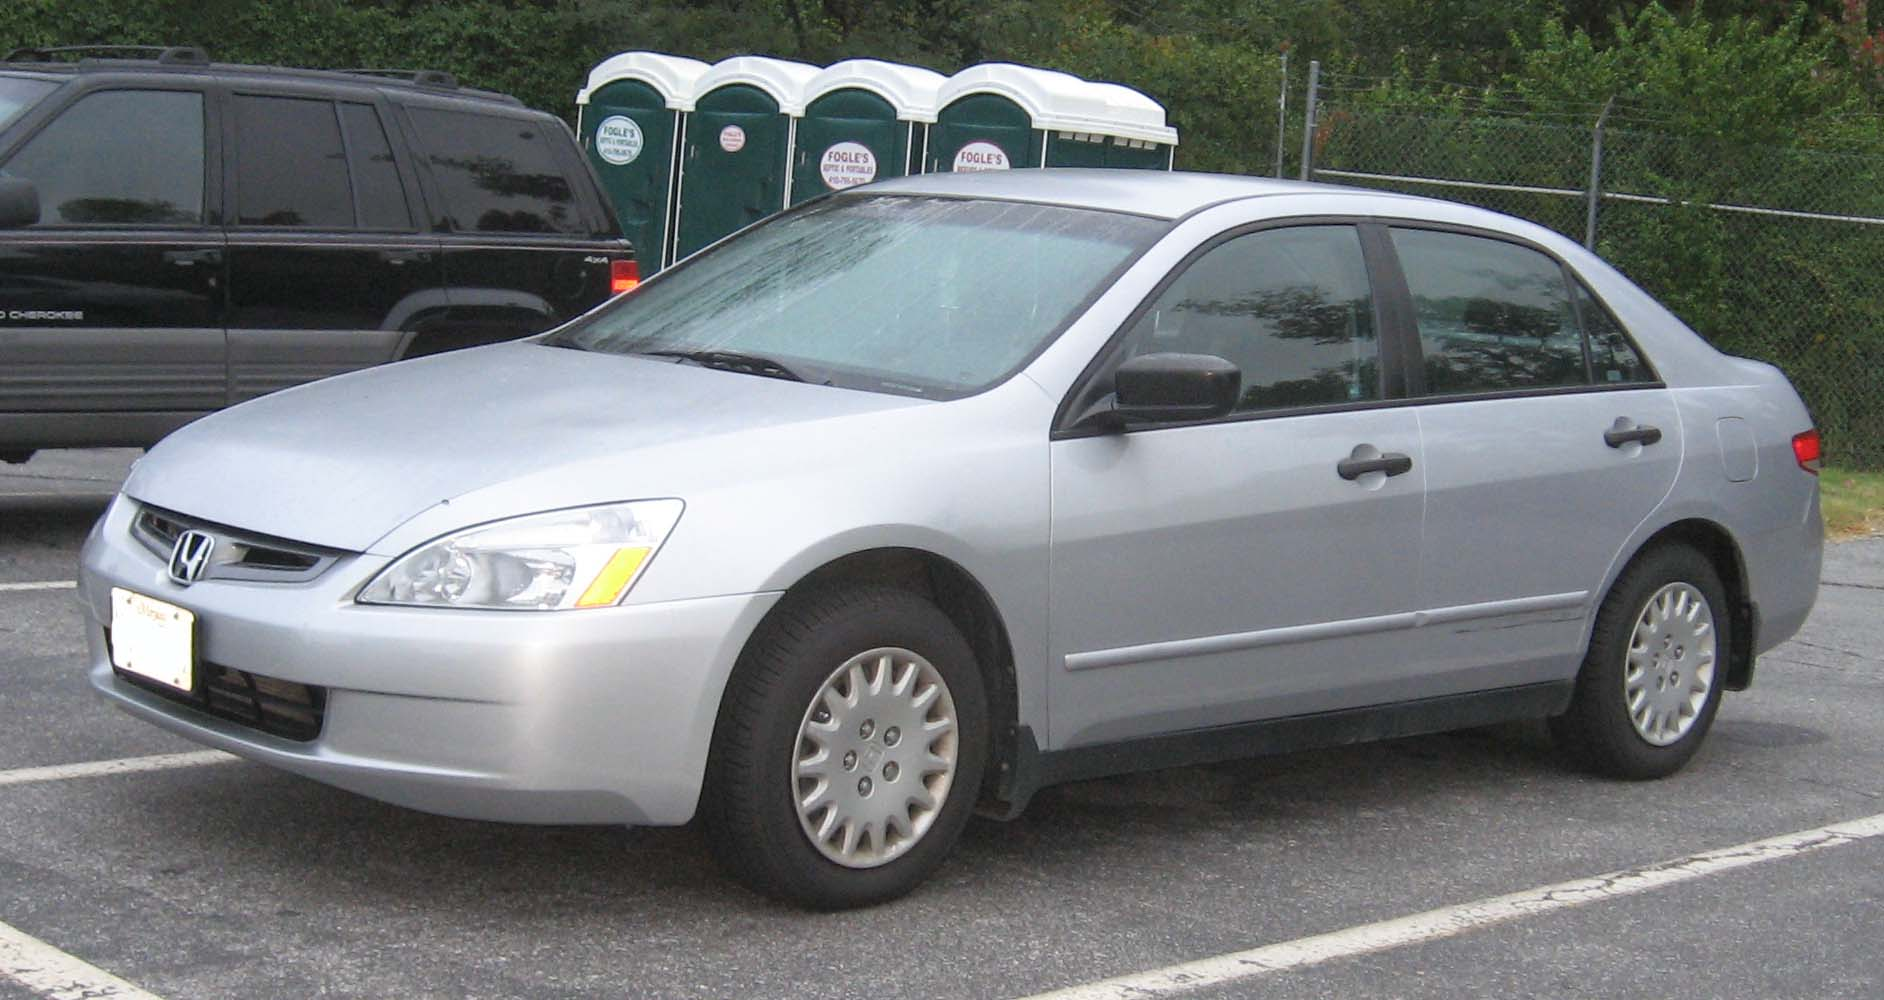 File:03-04 Honda Accord DX.jpg